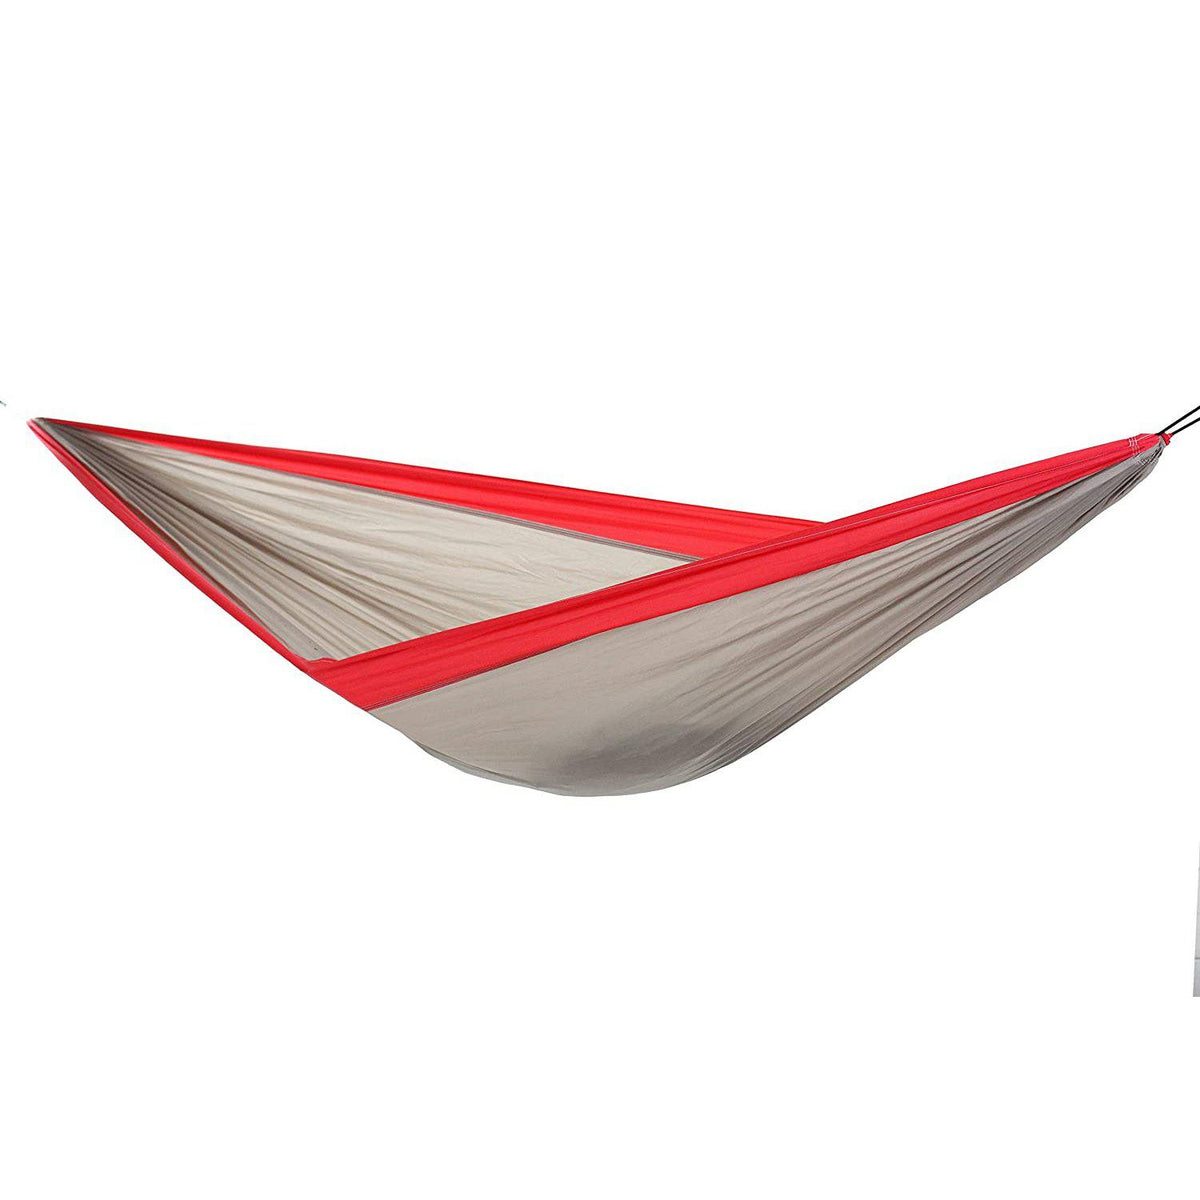 Easy Traveller Hammock, Twilight Red, from Byer of Maine